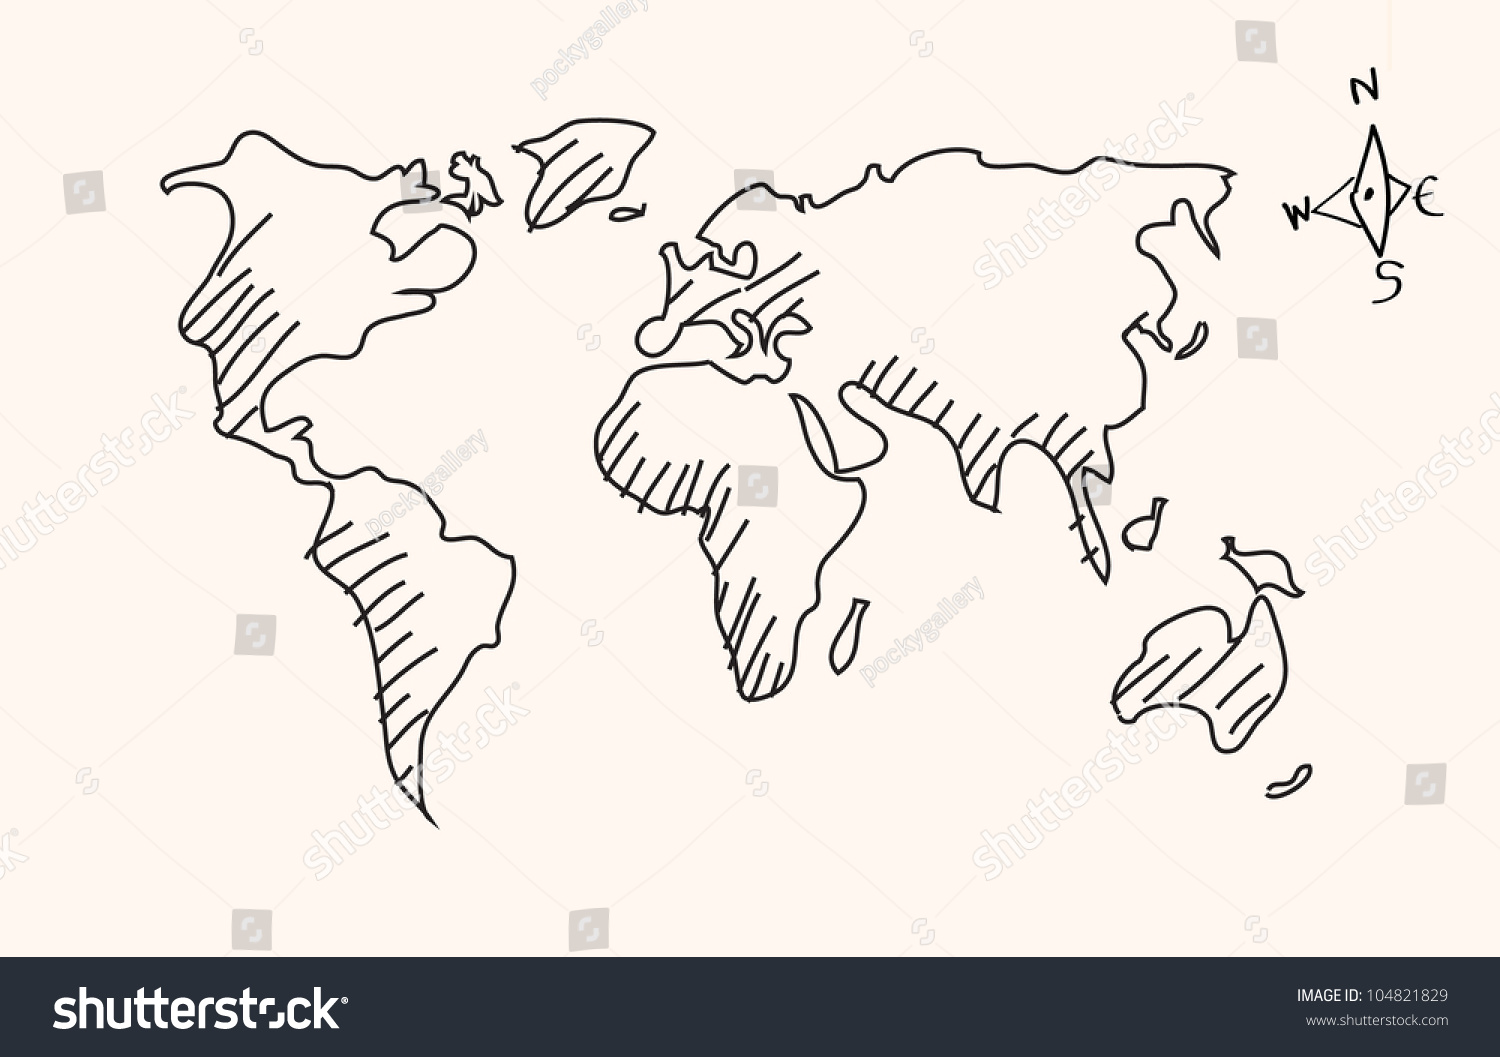 Hand Drawn Map Of The World.Hand Drawn World Map Vector Stock Vector Royalty Free 104821829